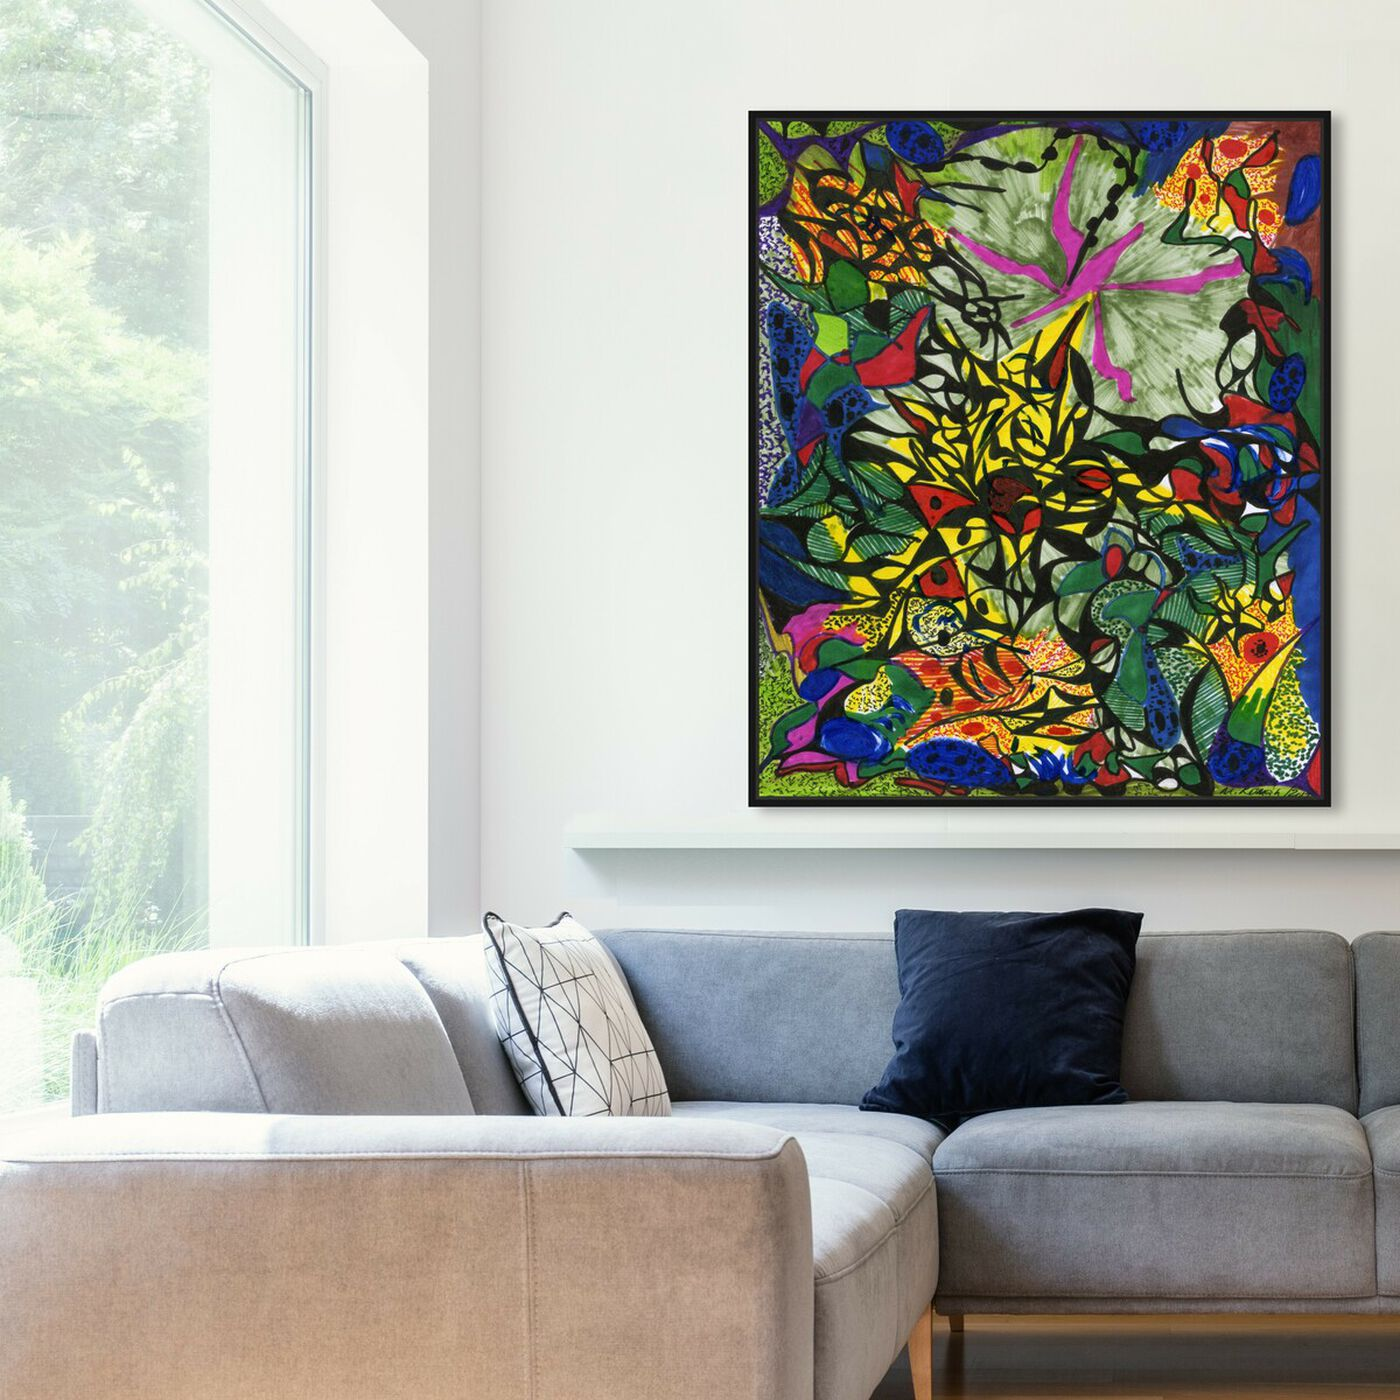 Hanging view of Forest Fire featuring abstract and shapes art.